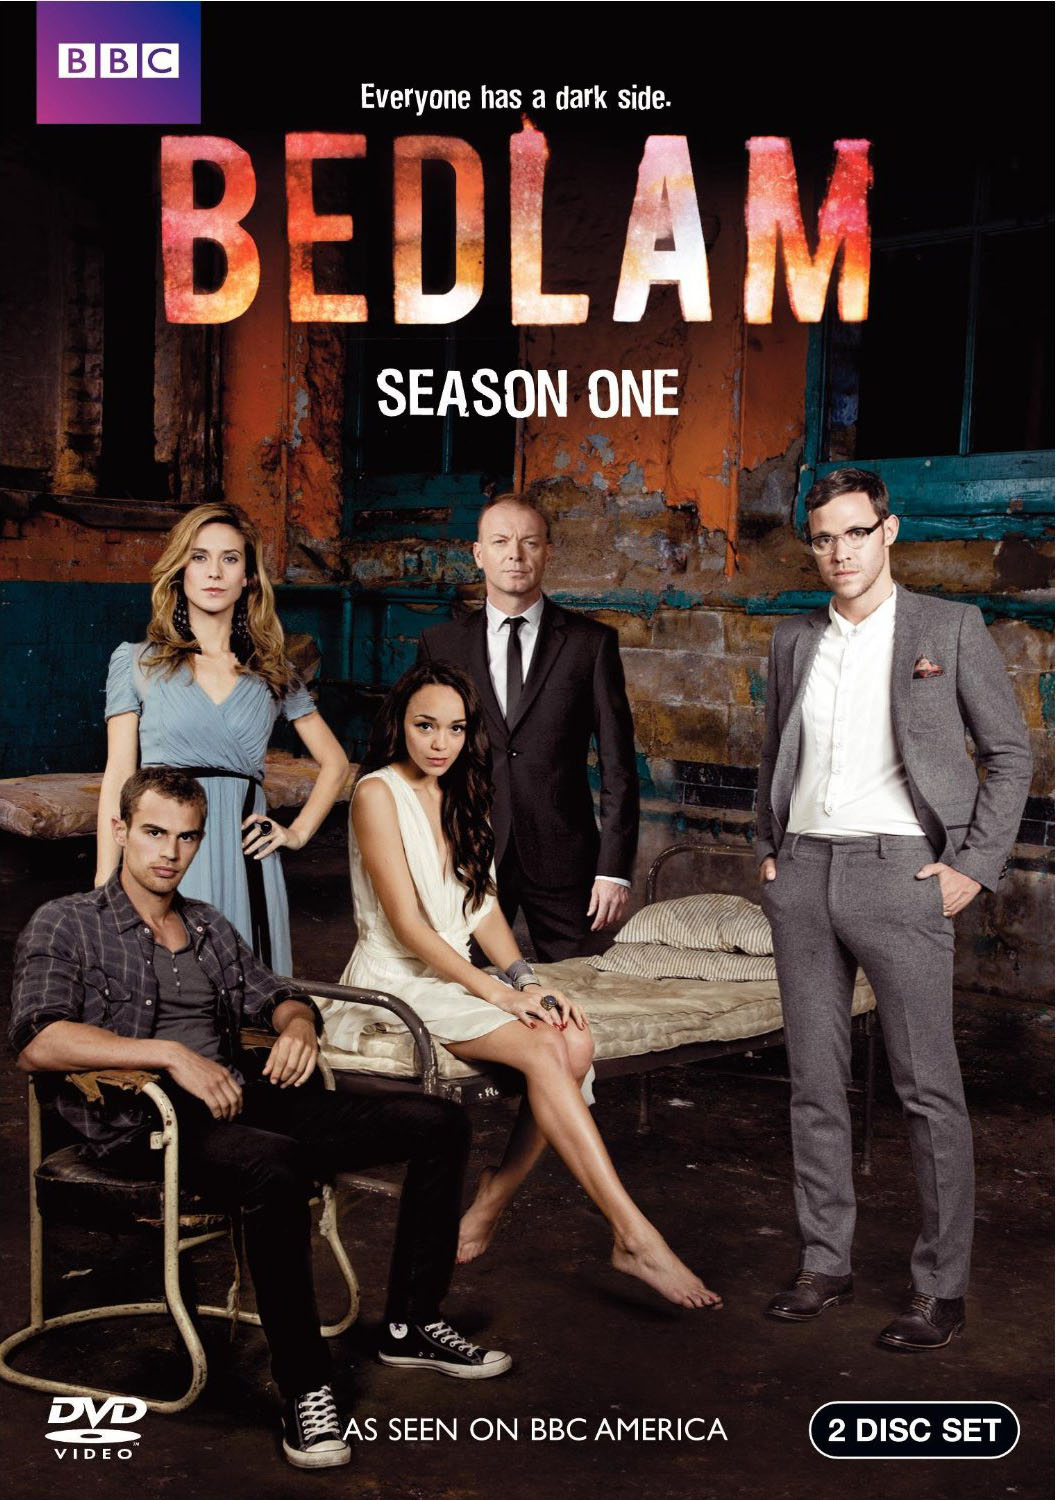 Bedlam Season 1 123Movies